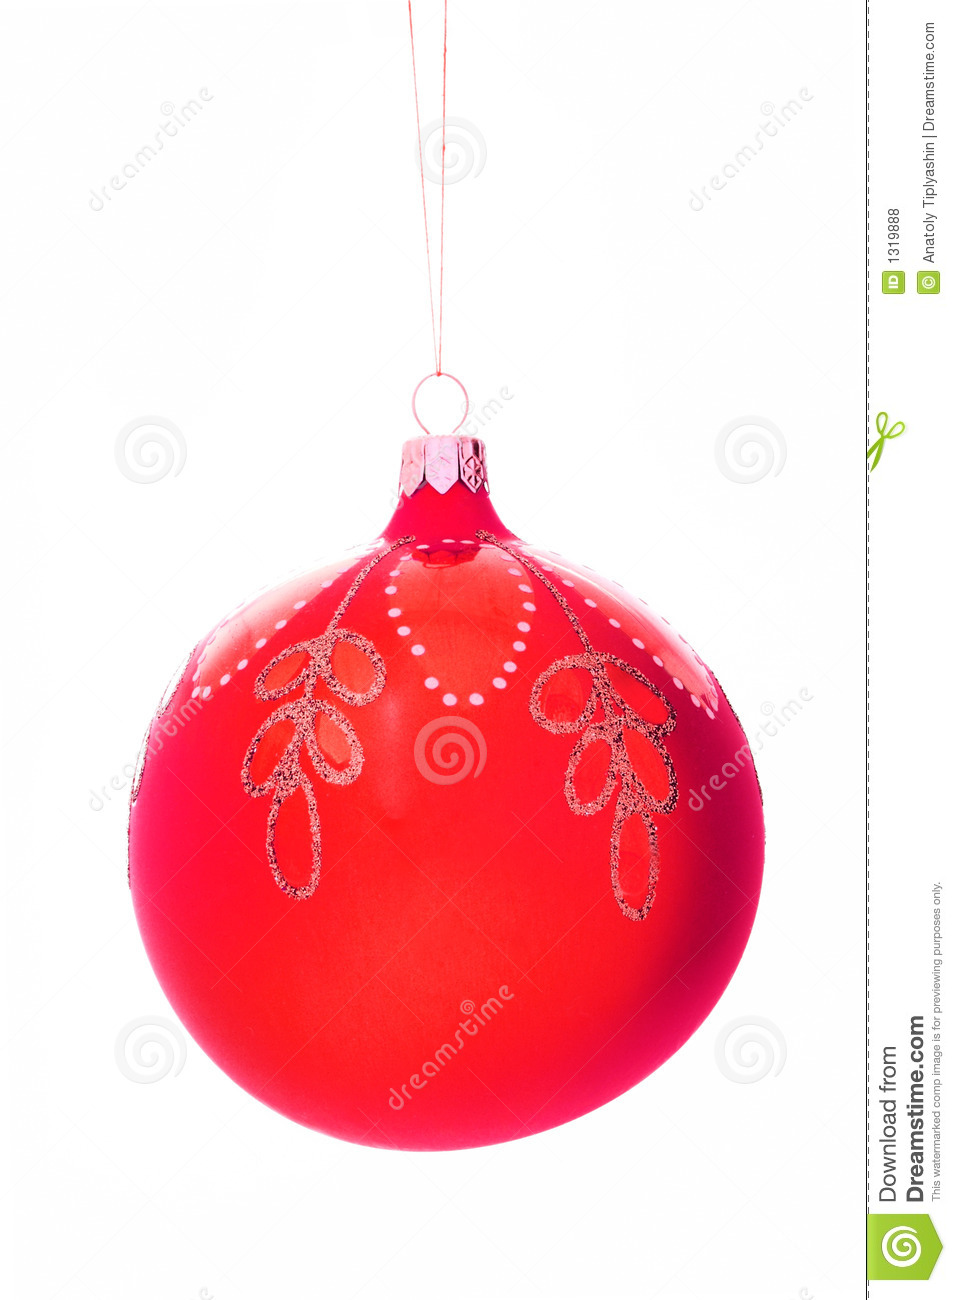 Christmas tree decorations ball royalty free stock photos for Ball decoration ideas